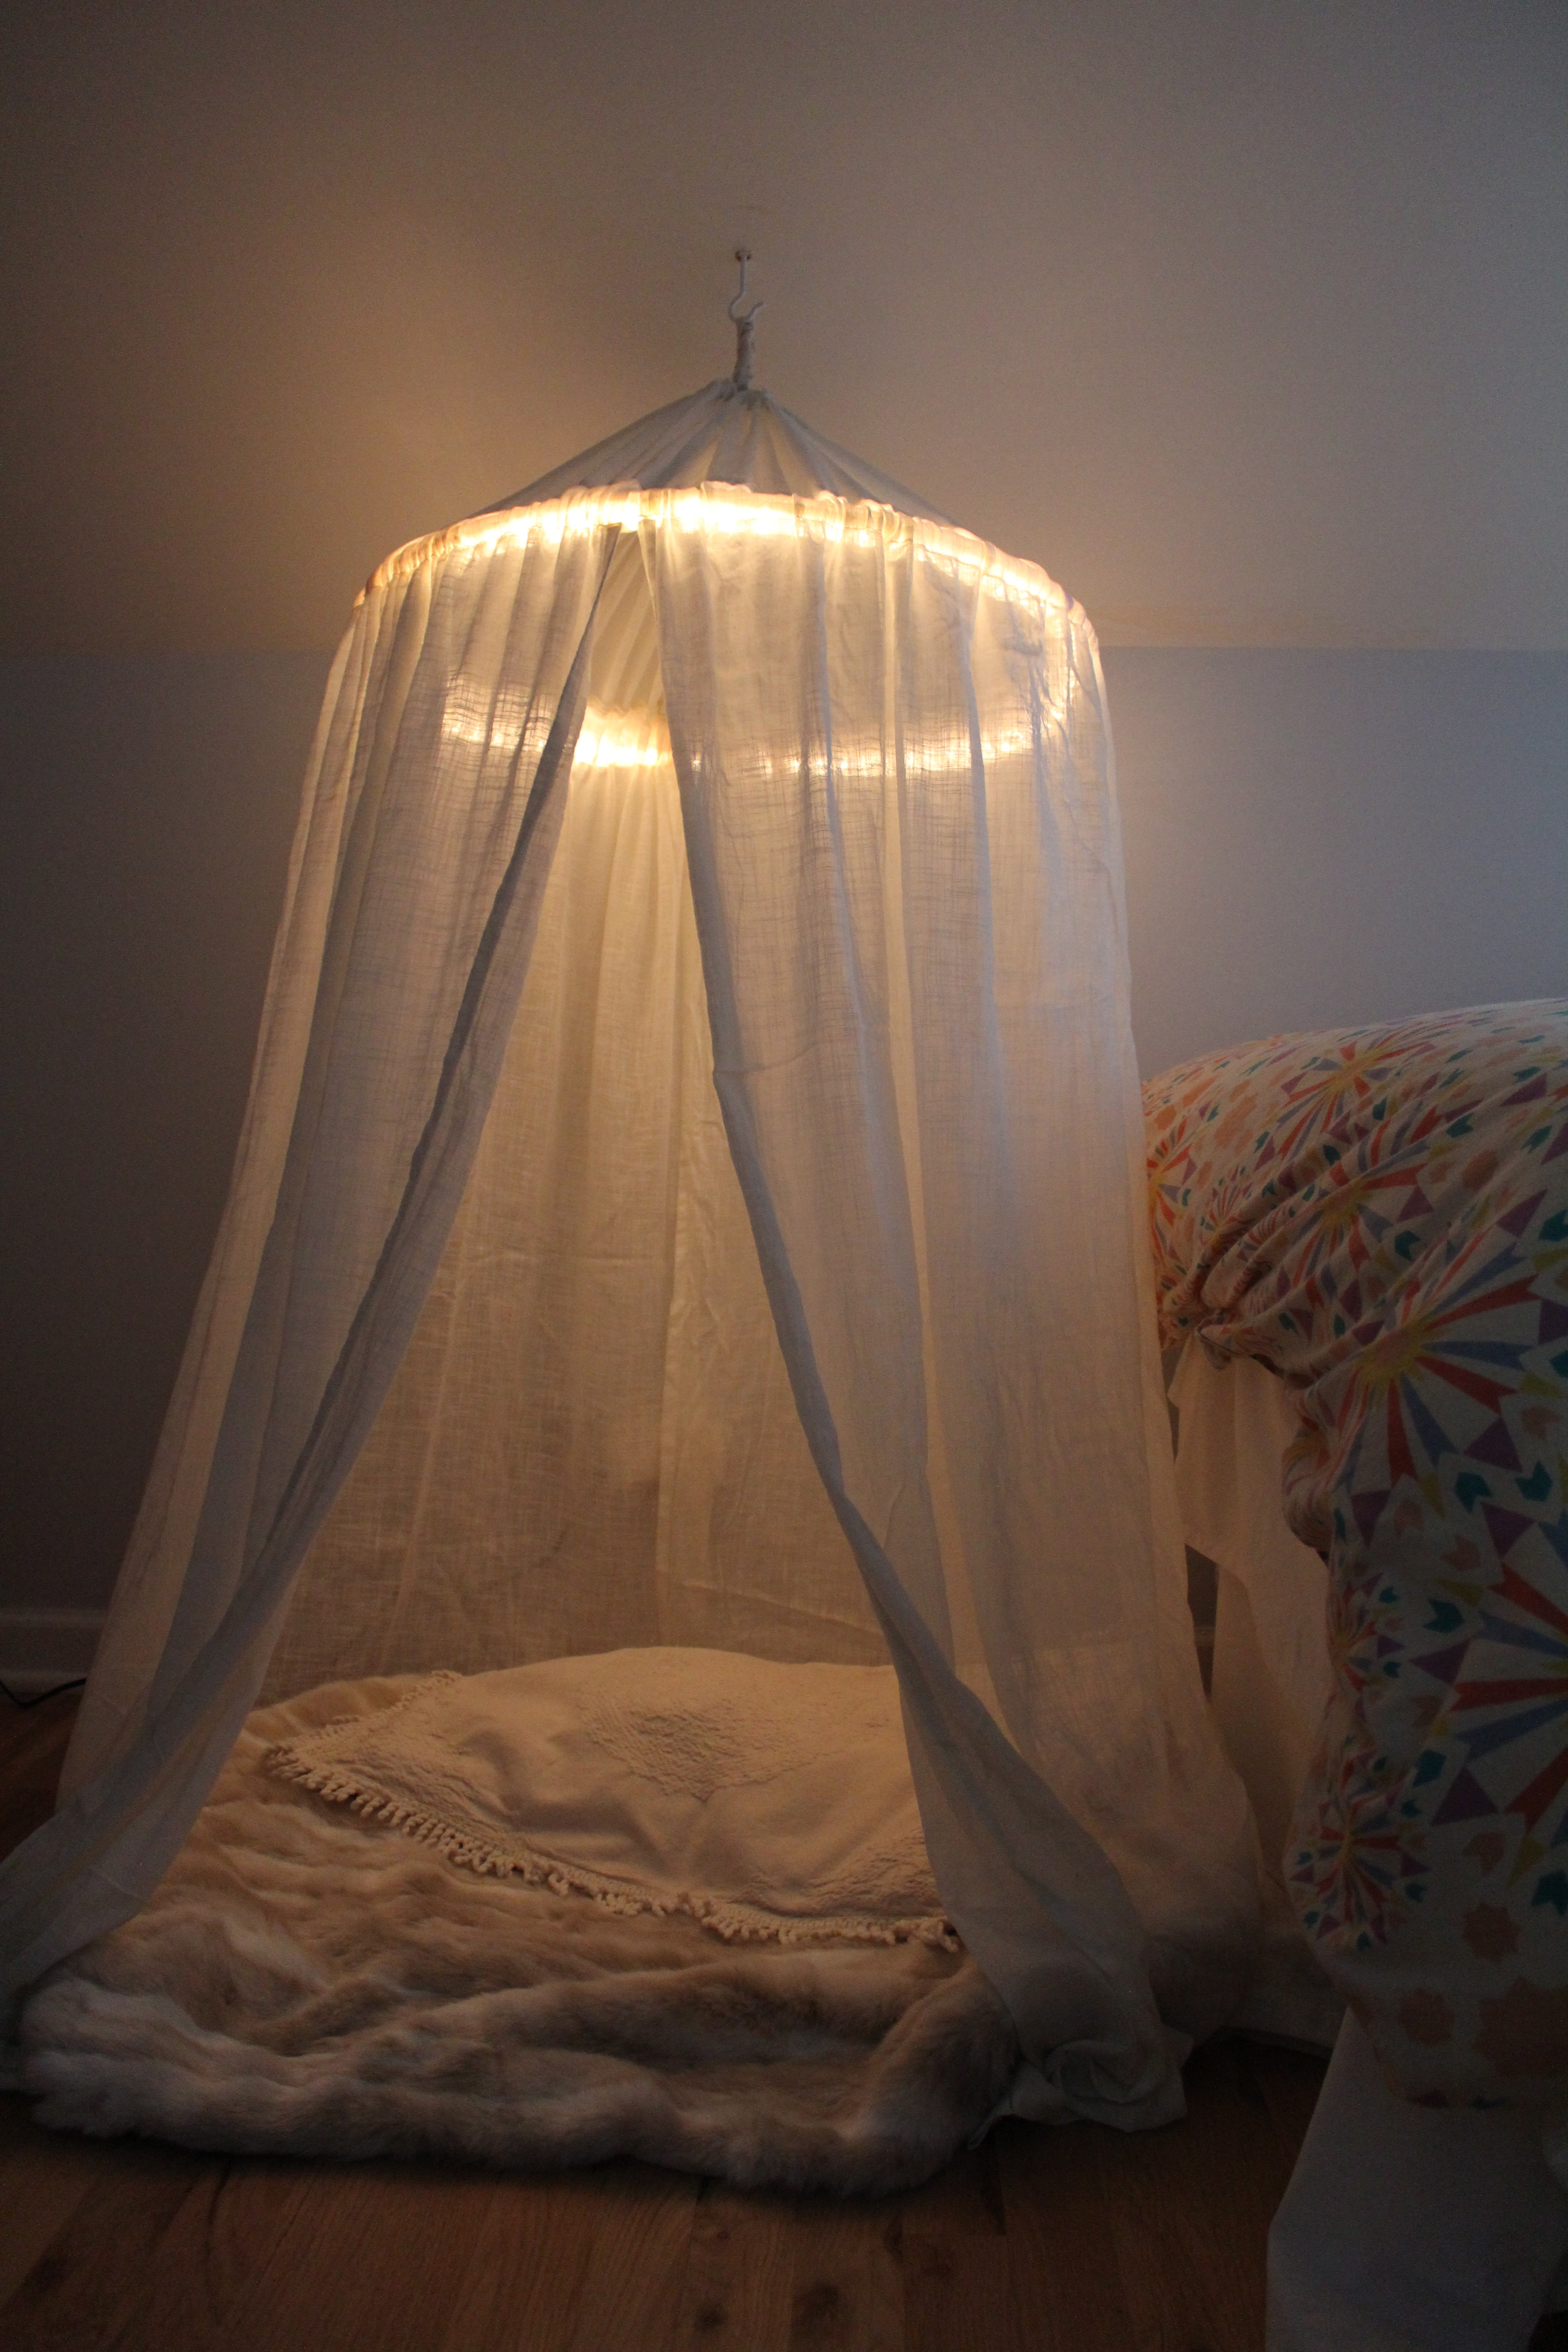 Best ideas about DIY Kids Canopy . Save or Pin diy canopy handmaidtales Now.